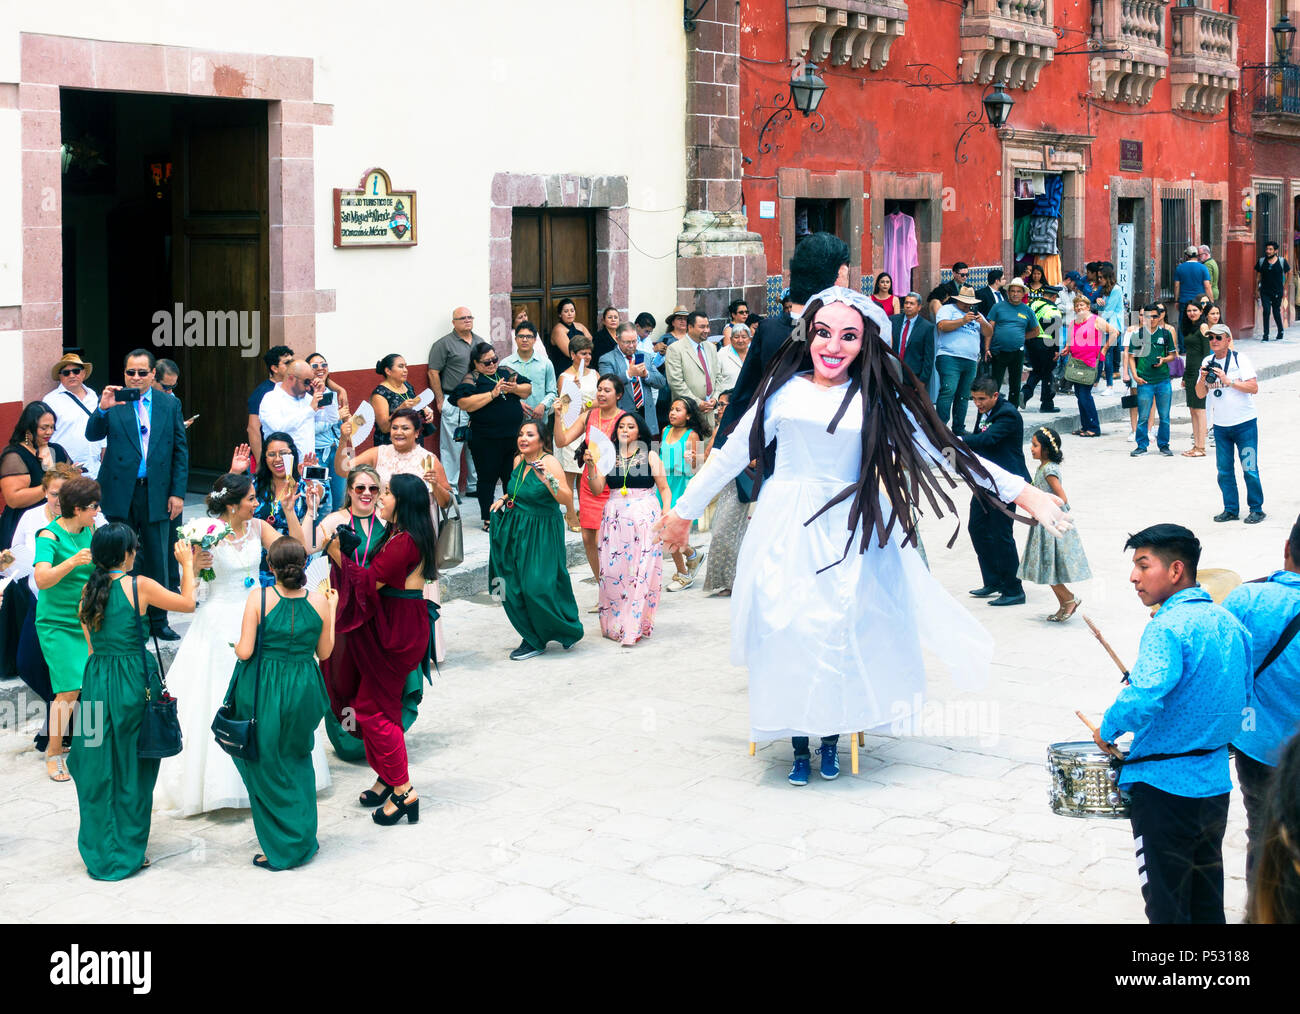 People and a mojigangas dancing in the street at a wedding party at La Jardin in San Miguel de Allende - Stock Image